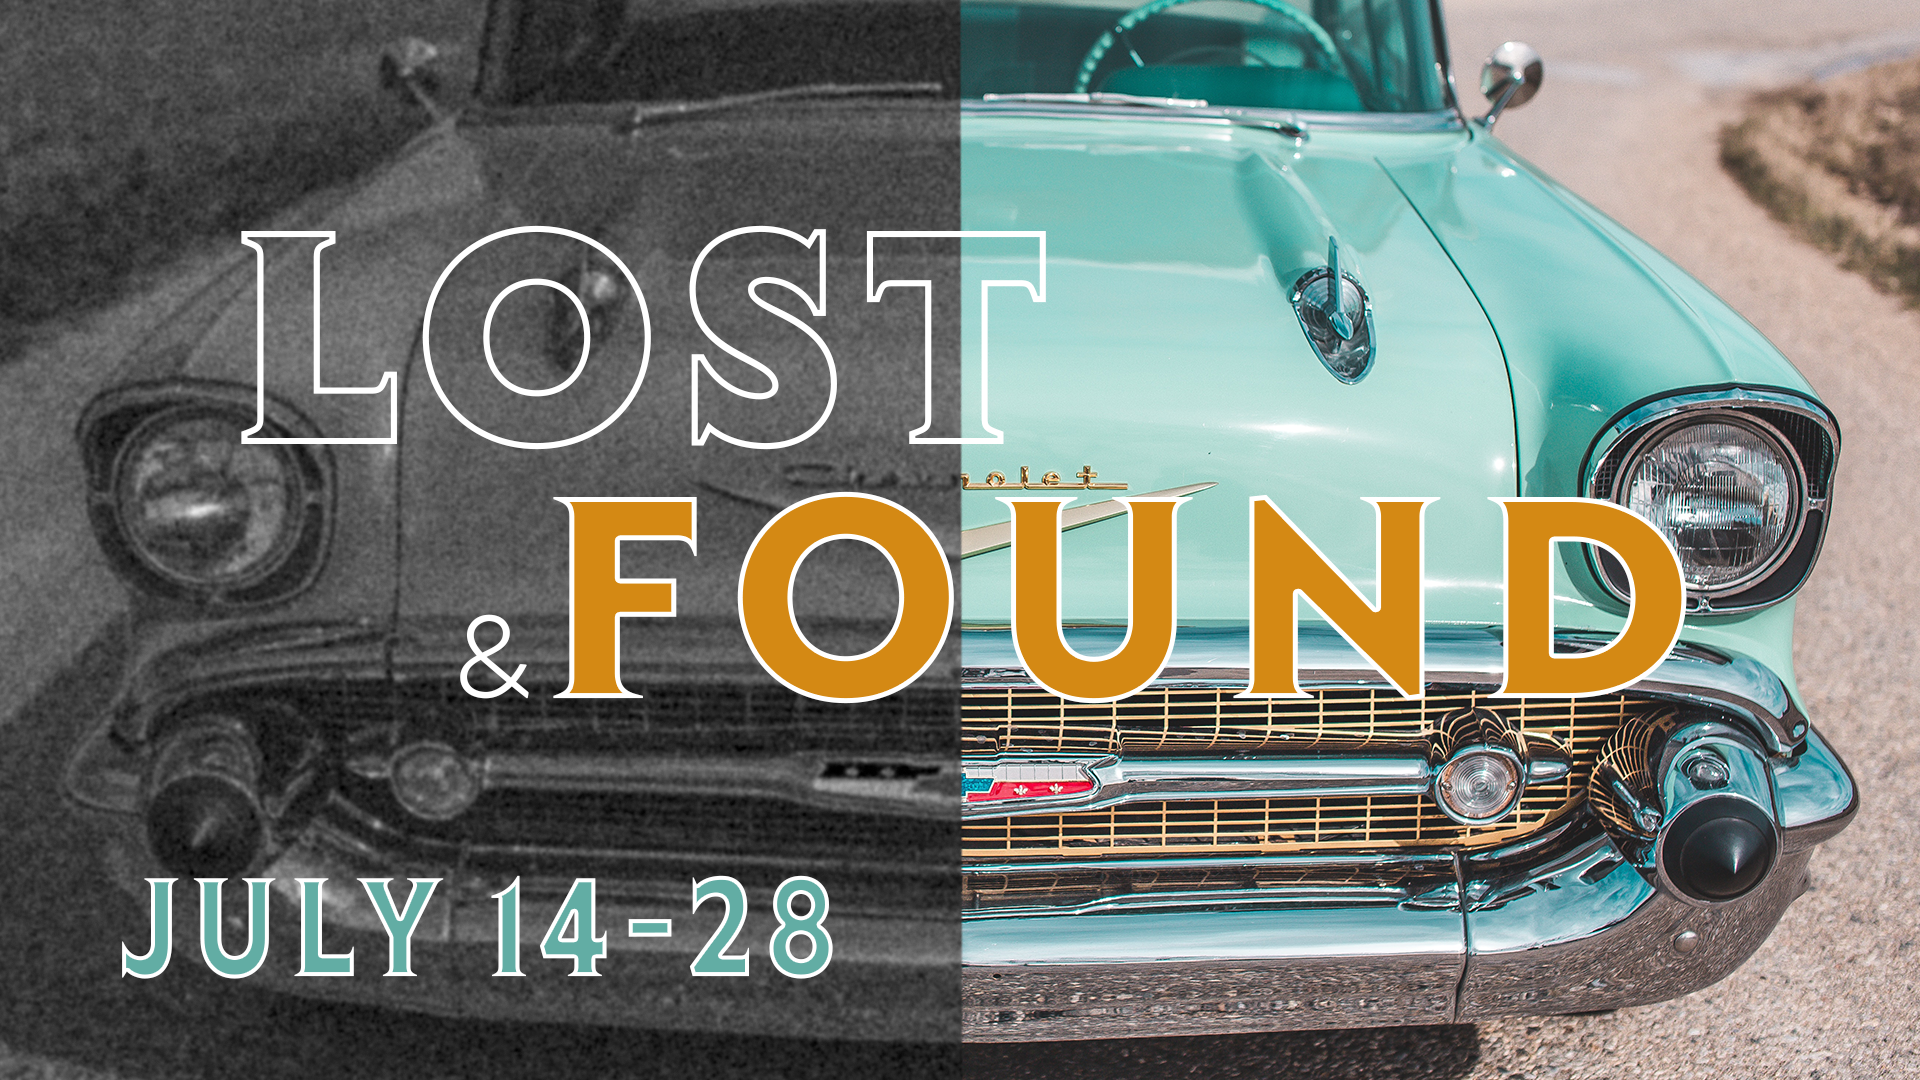 LOST AND FOUND 2 v3 date added.png